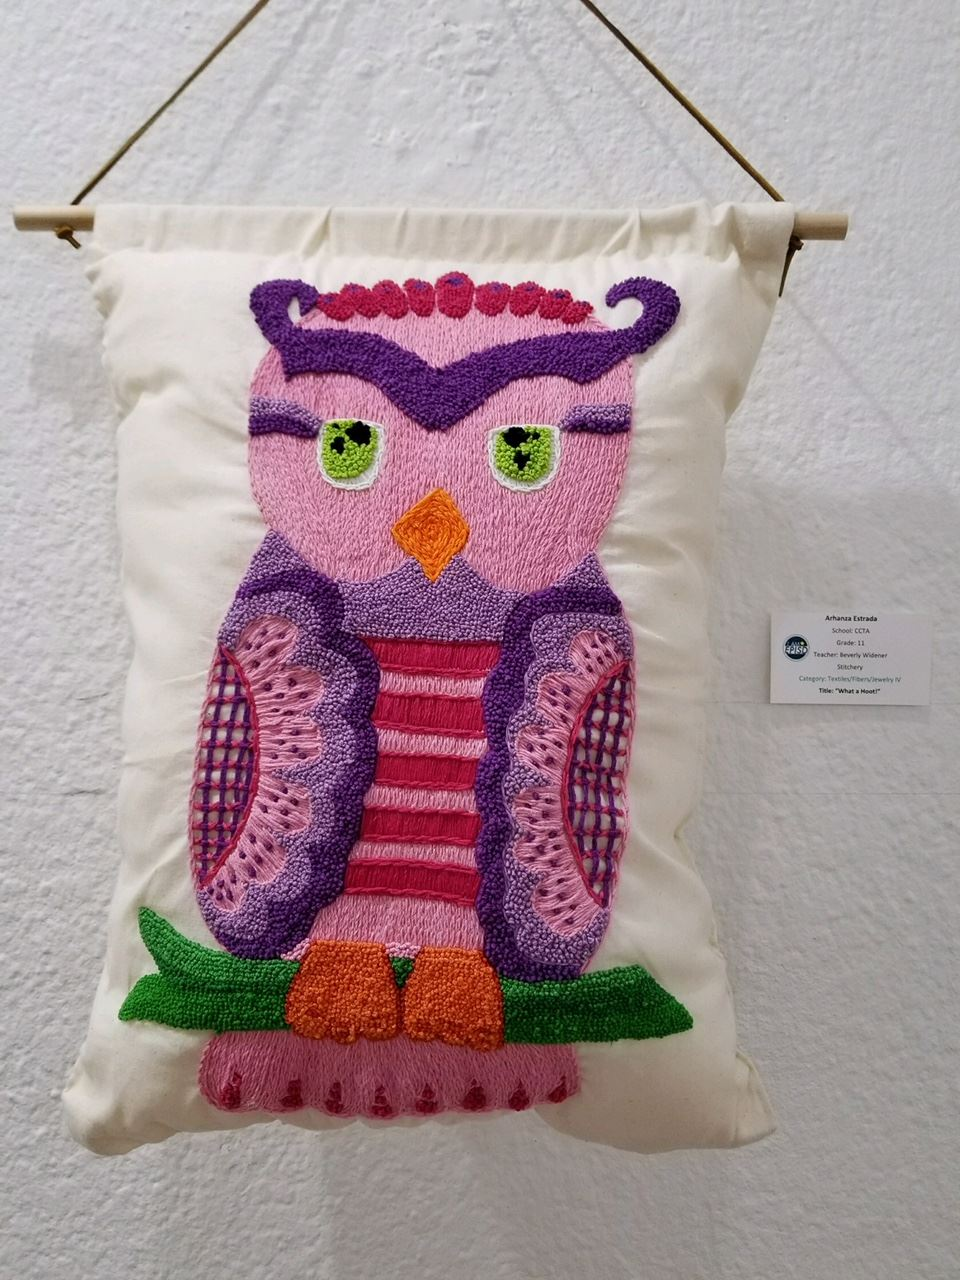 Stitchery by Arhanza Estrada - First Place